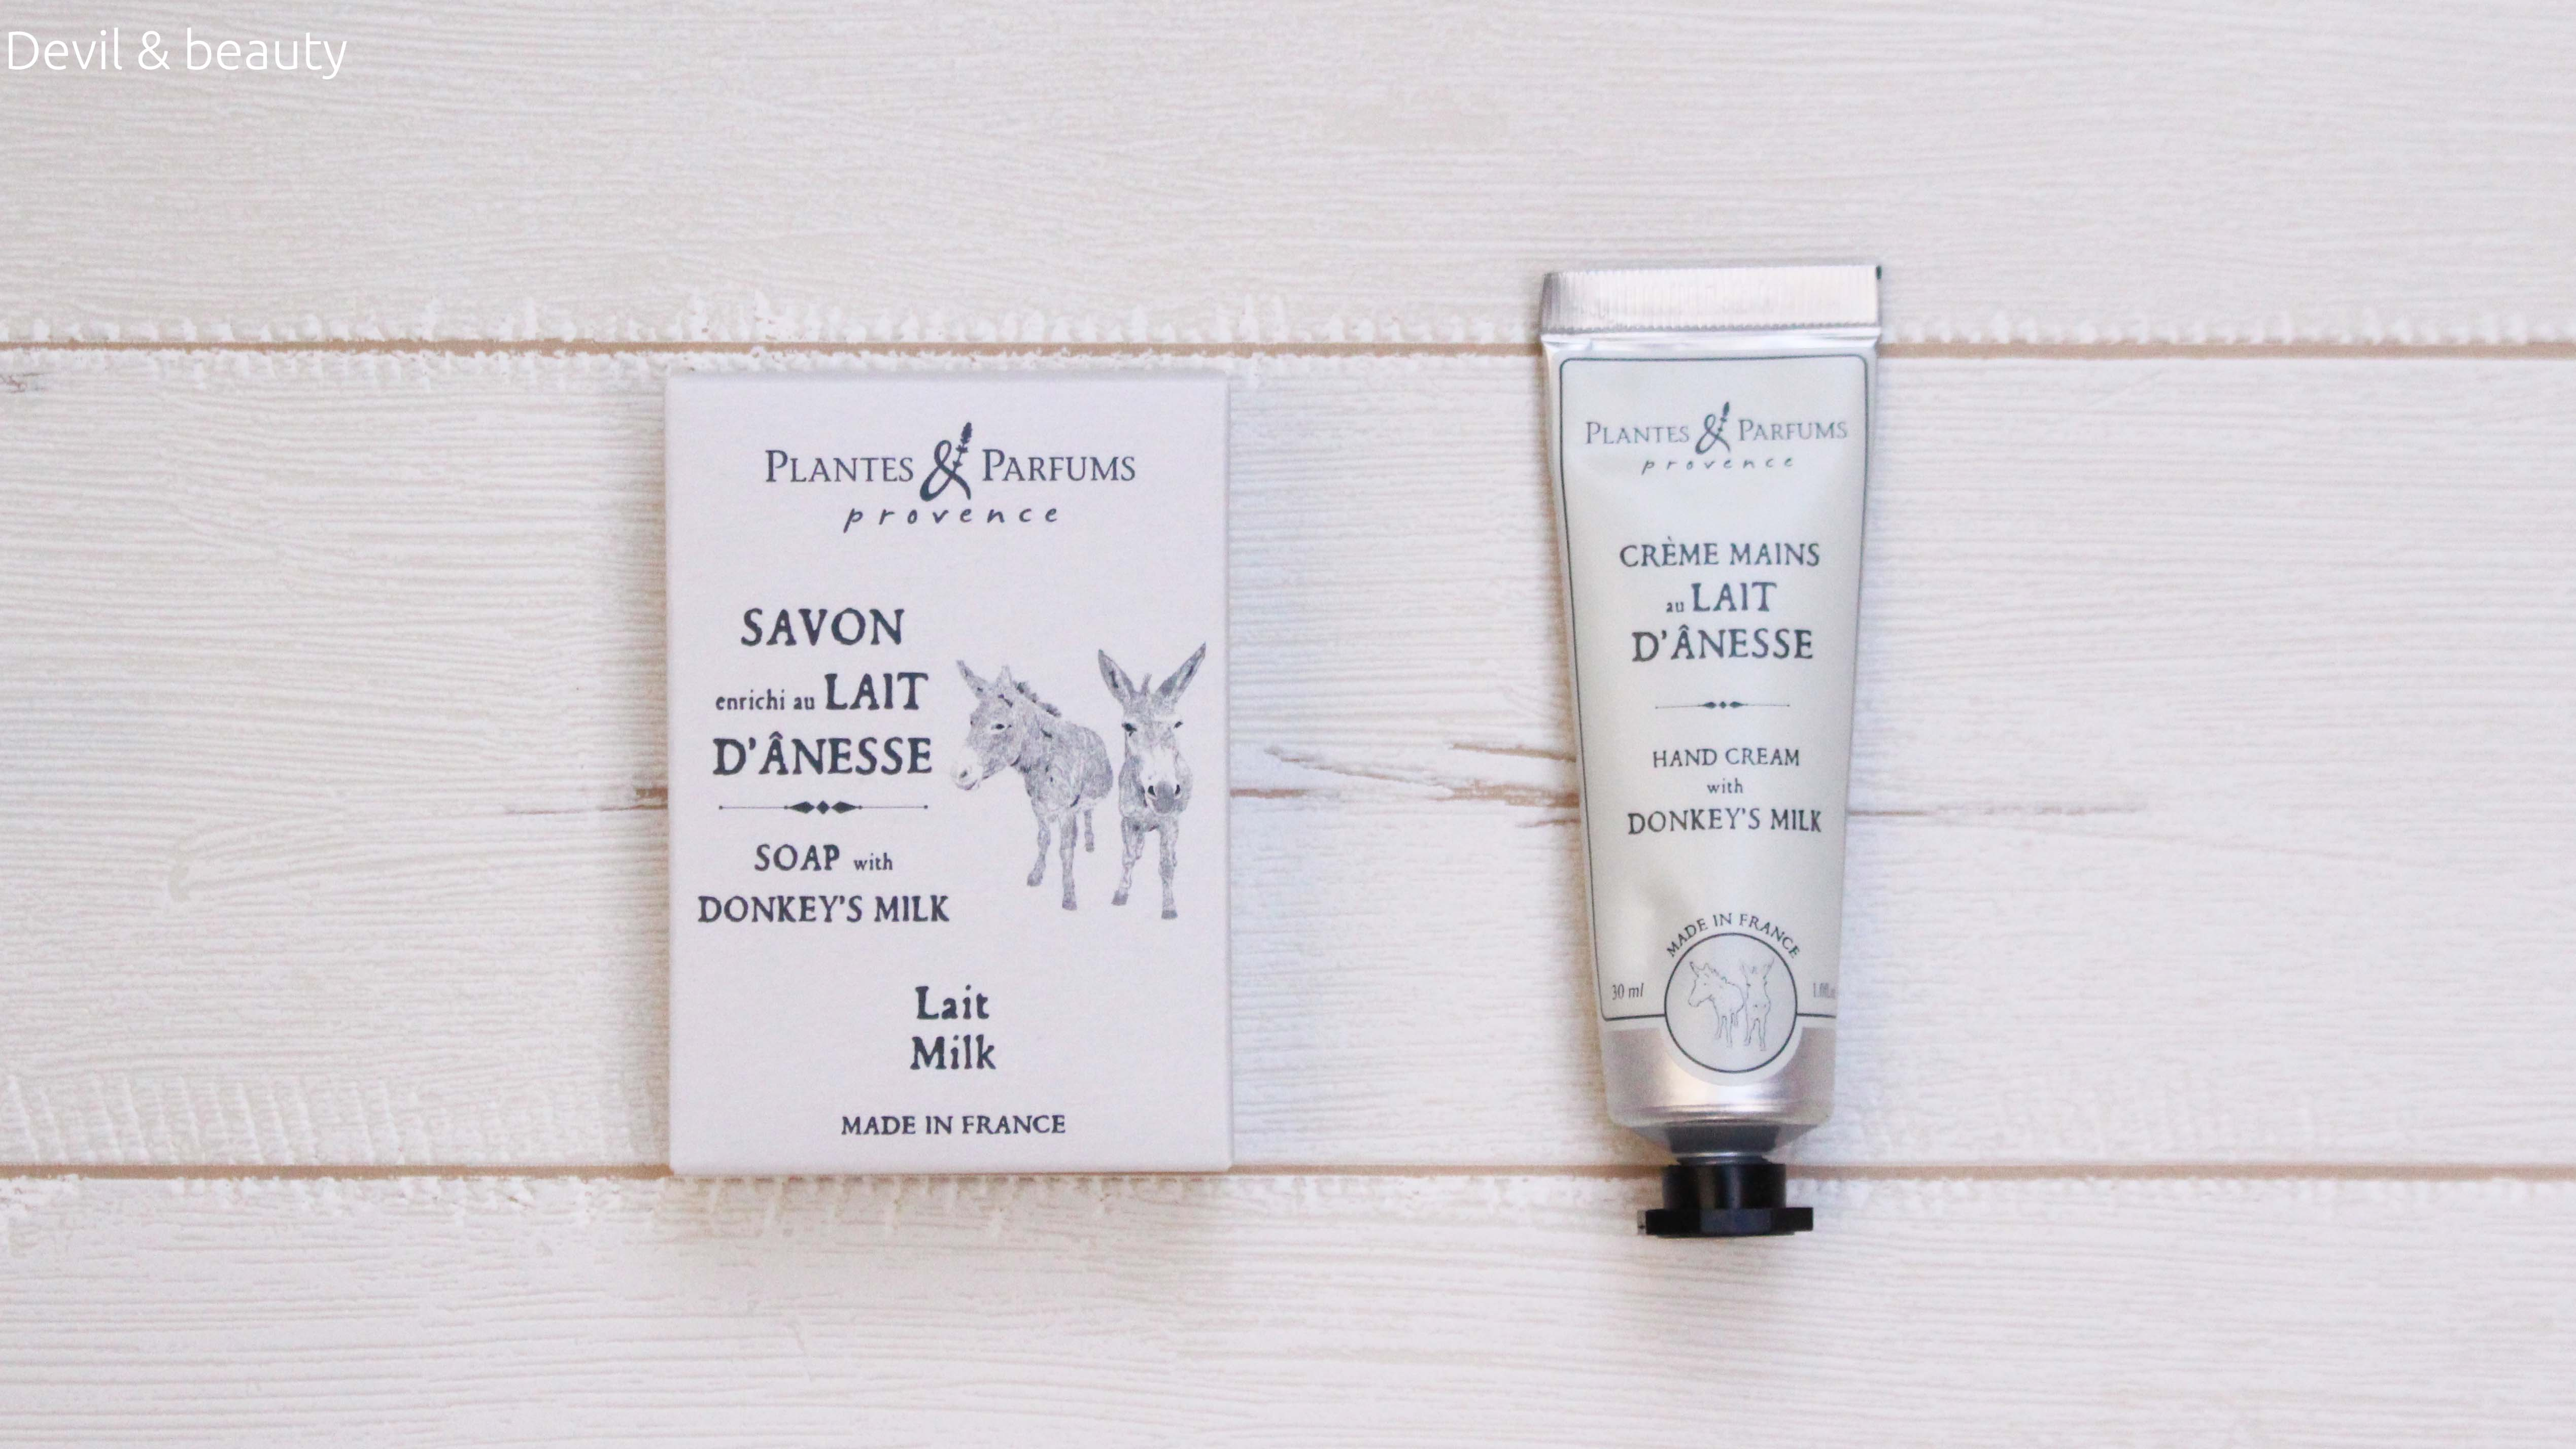 donkeys-soap-hand-cream6 - image